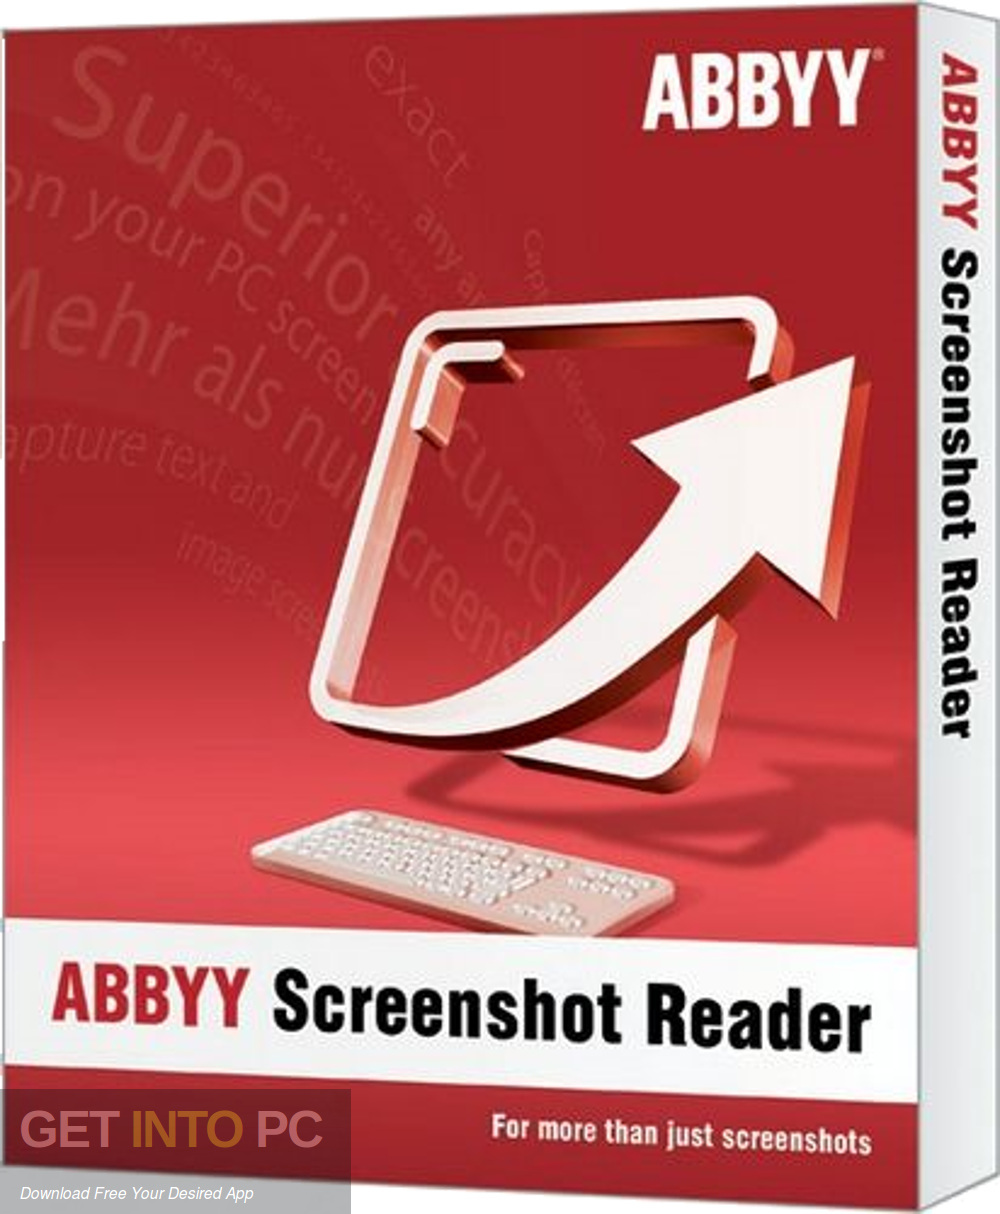 ABBYY Screenshot Reader Free Download-GetintoPC.com